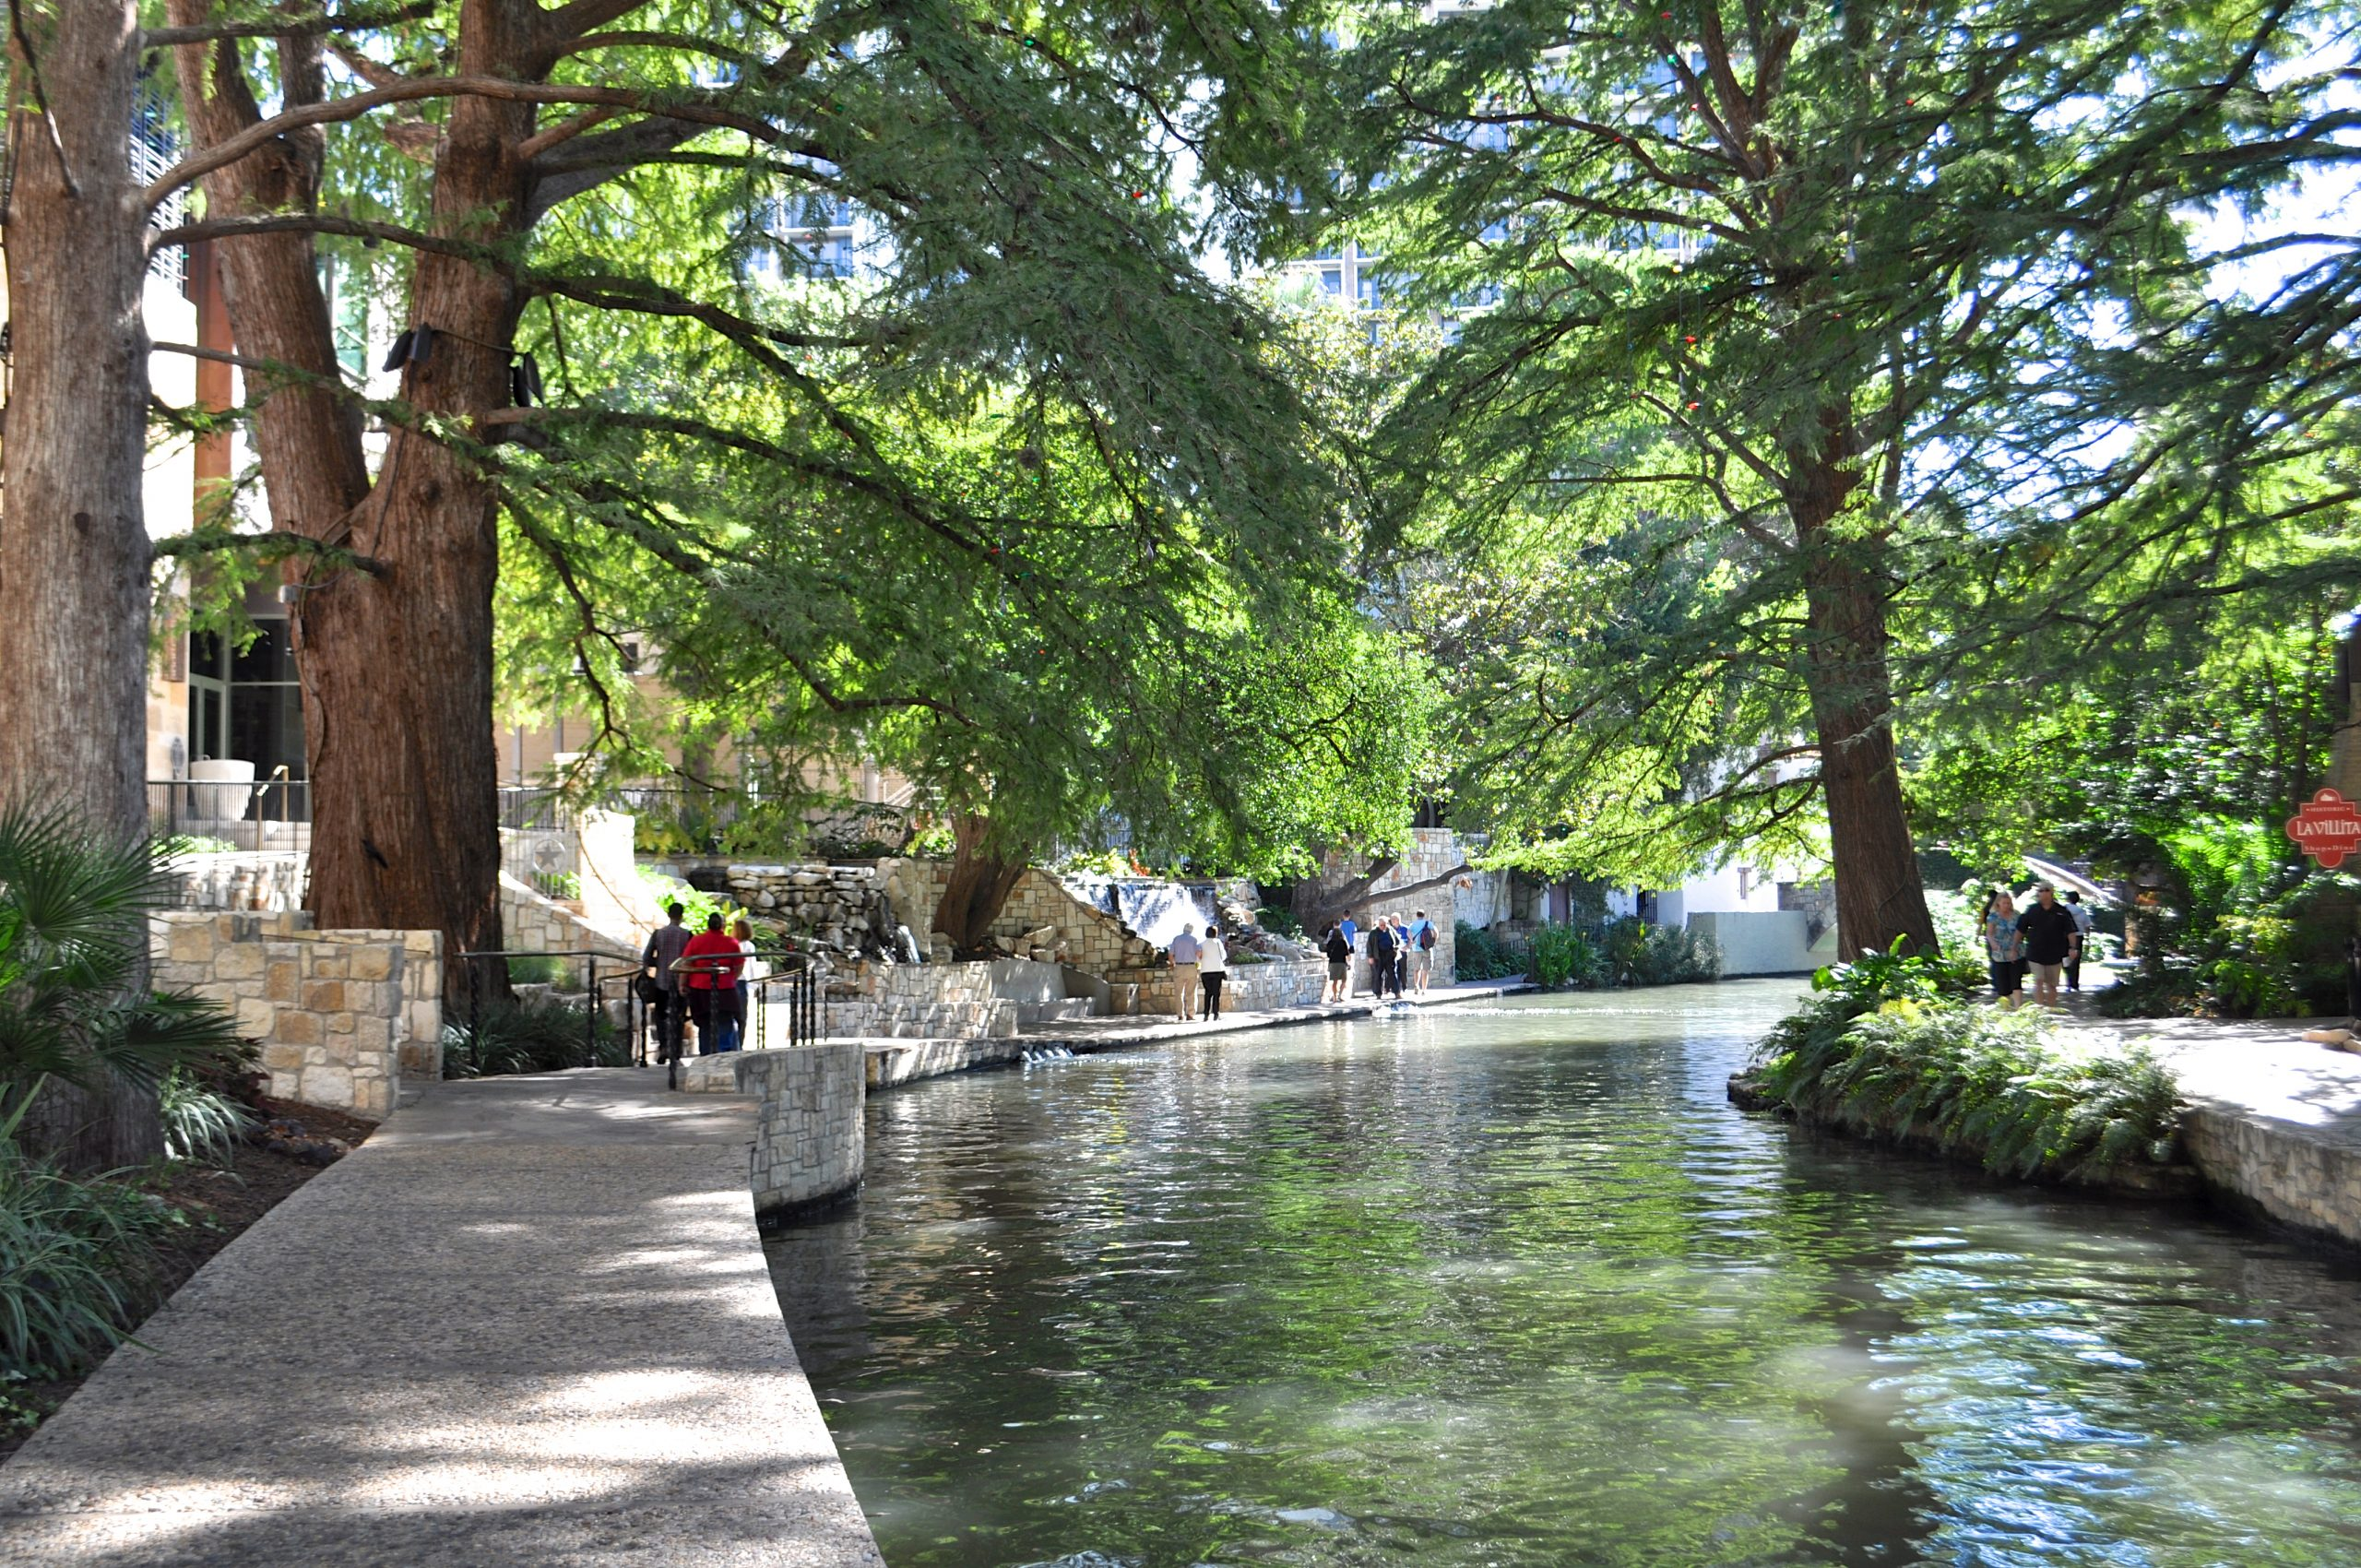 A busy afternoon on the River Walk between the newly-opened Briscoe Western Art Museum (left) and La Villita (right). Photo by Iris Dimmick.